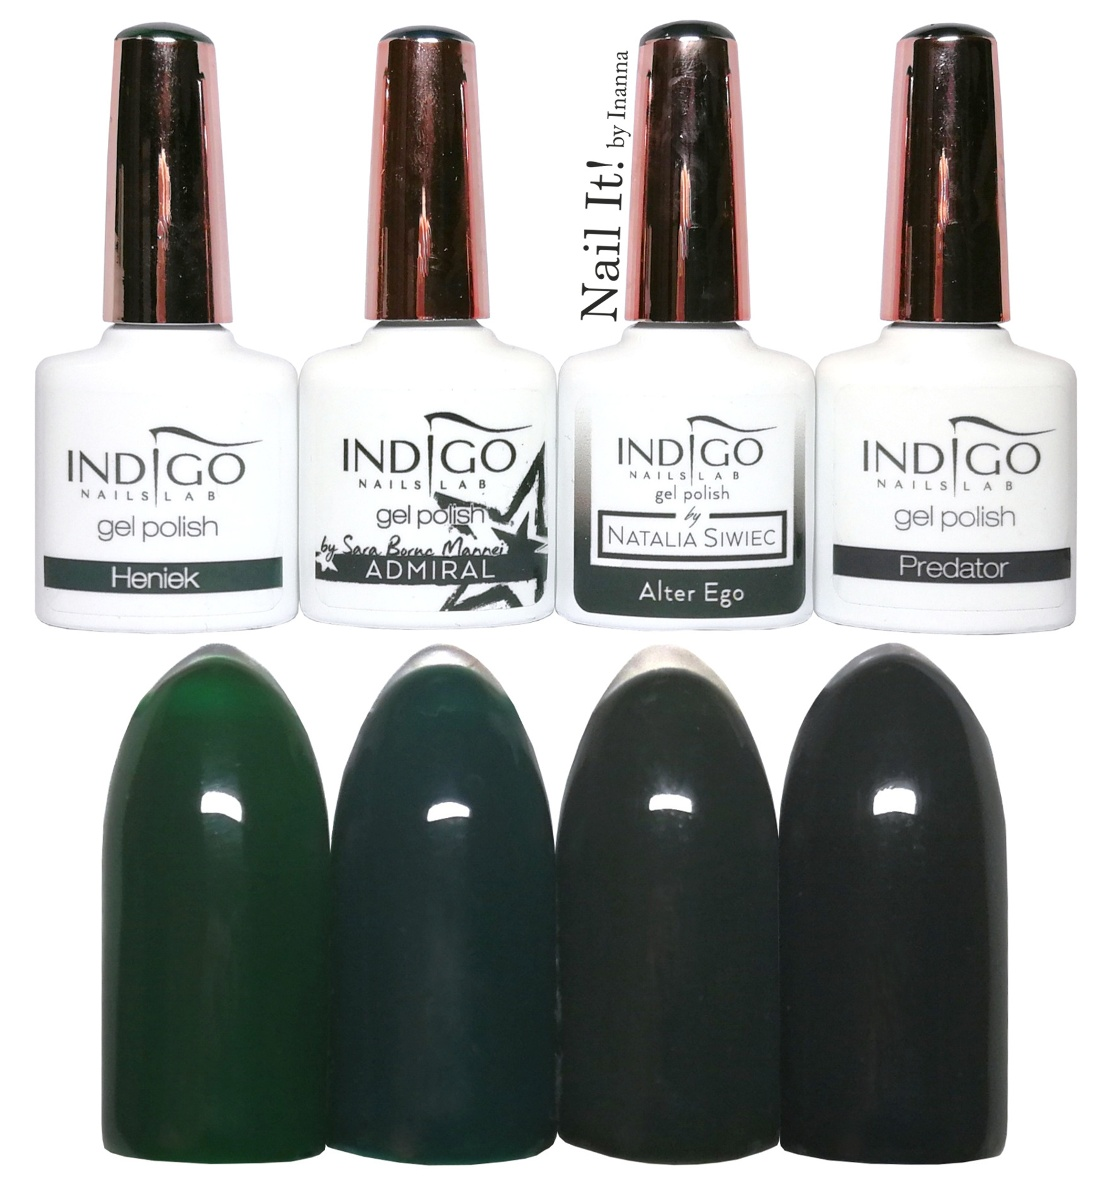 COMPARISON - Indigo Nails dark green gel polishes (Heniek, Admiral, Alter Ego, Predator)